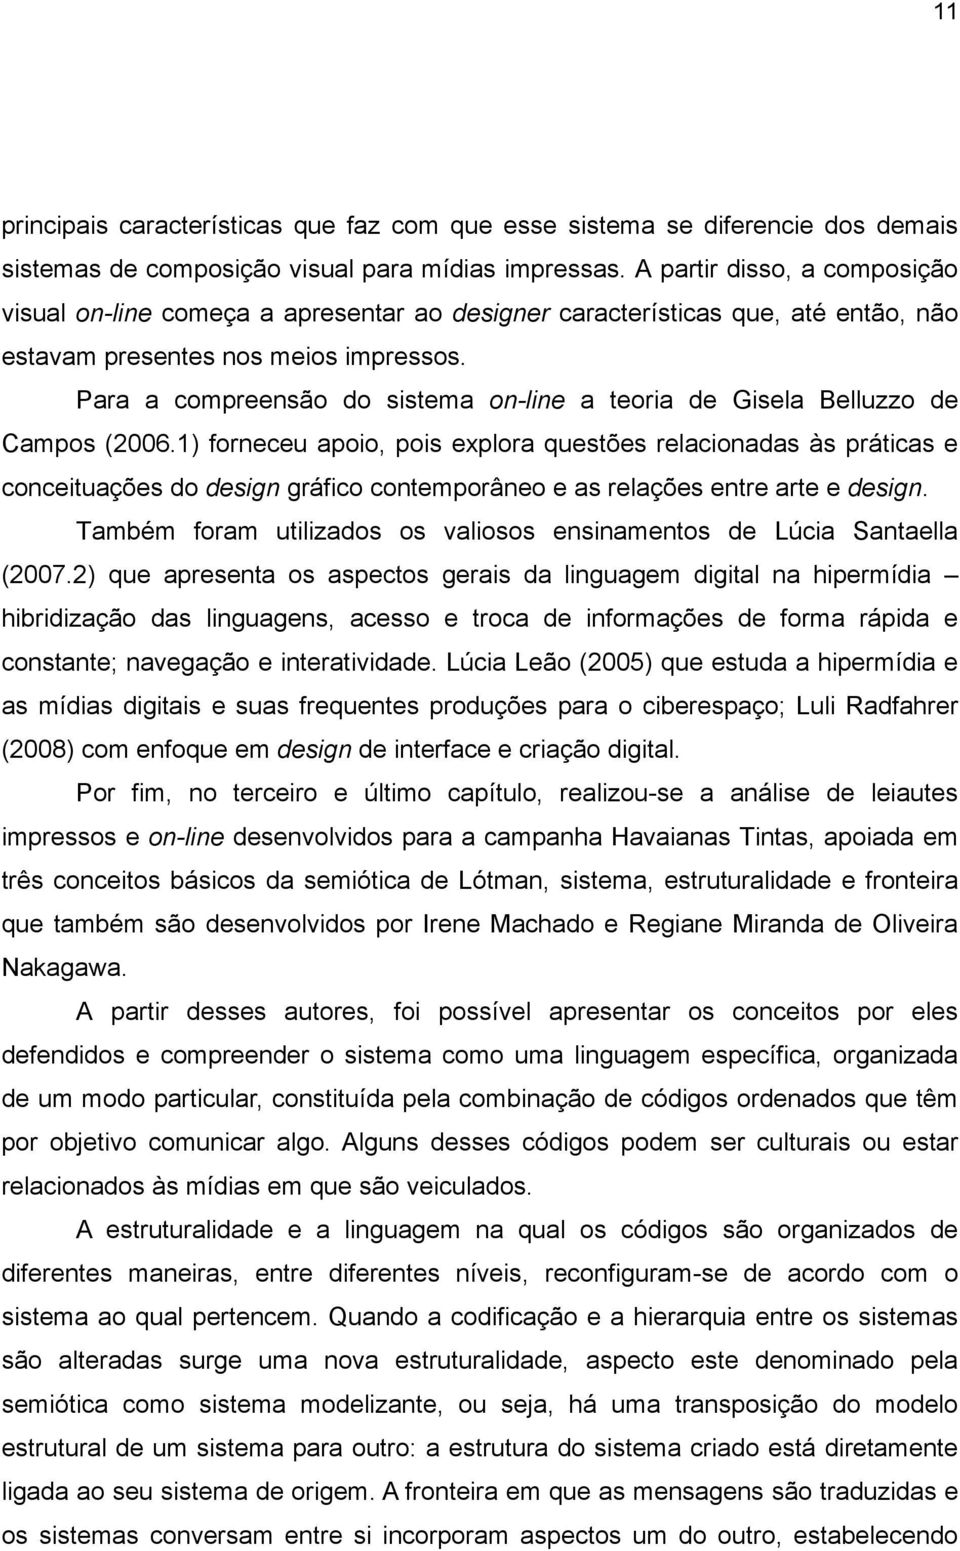 Para a compreensão do sistema on-line a teoria de Gisela Belluzzo de Campos (2006.